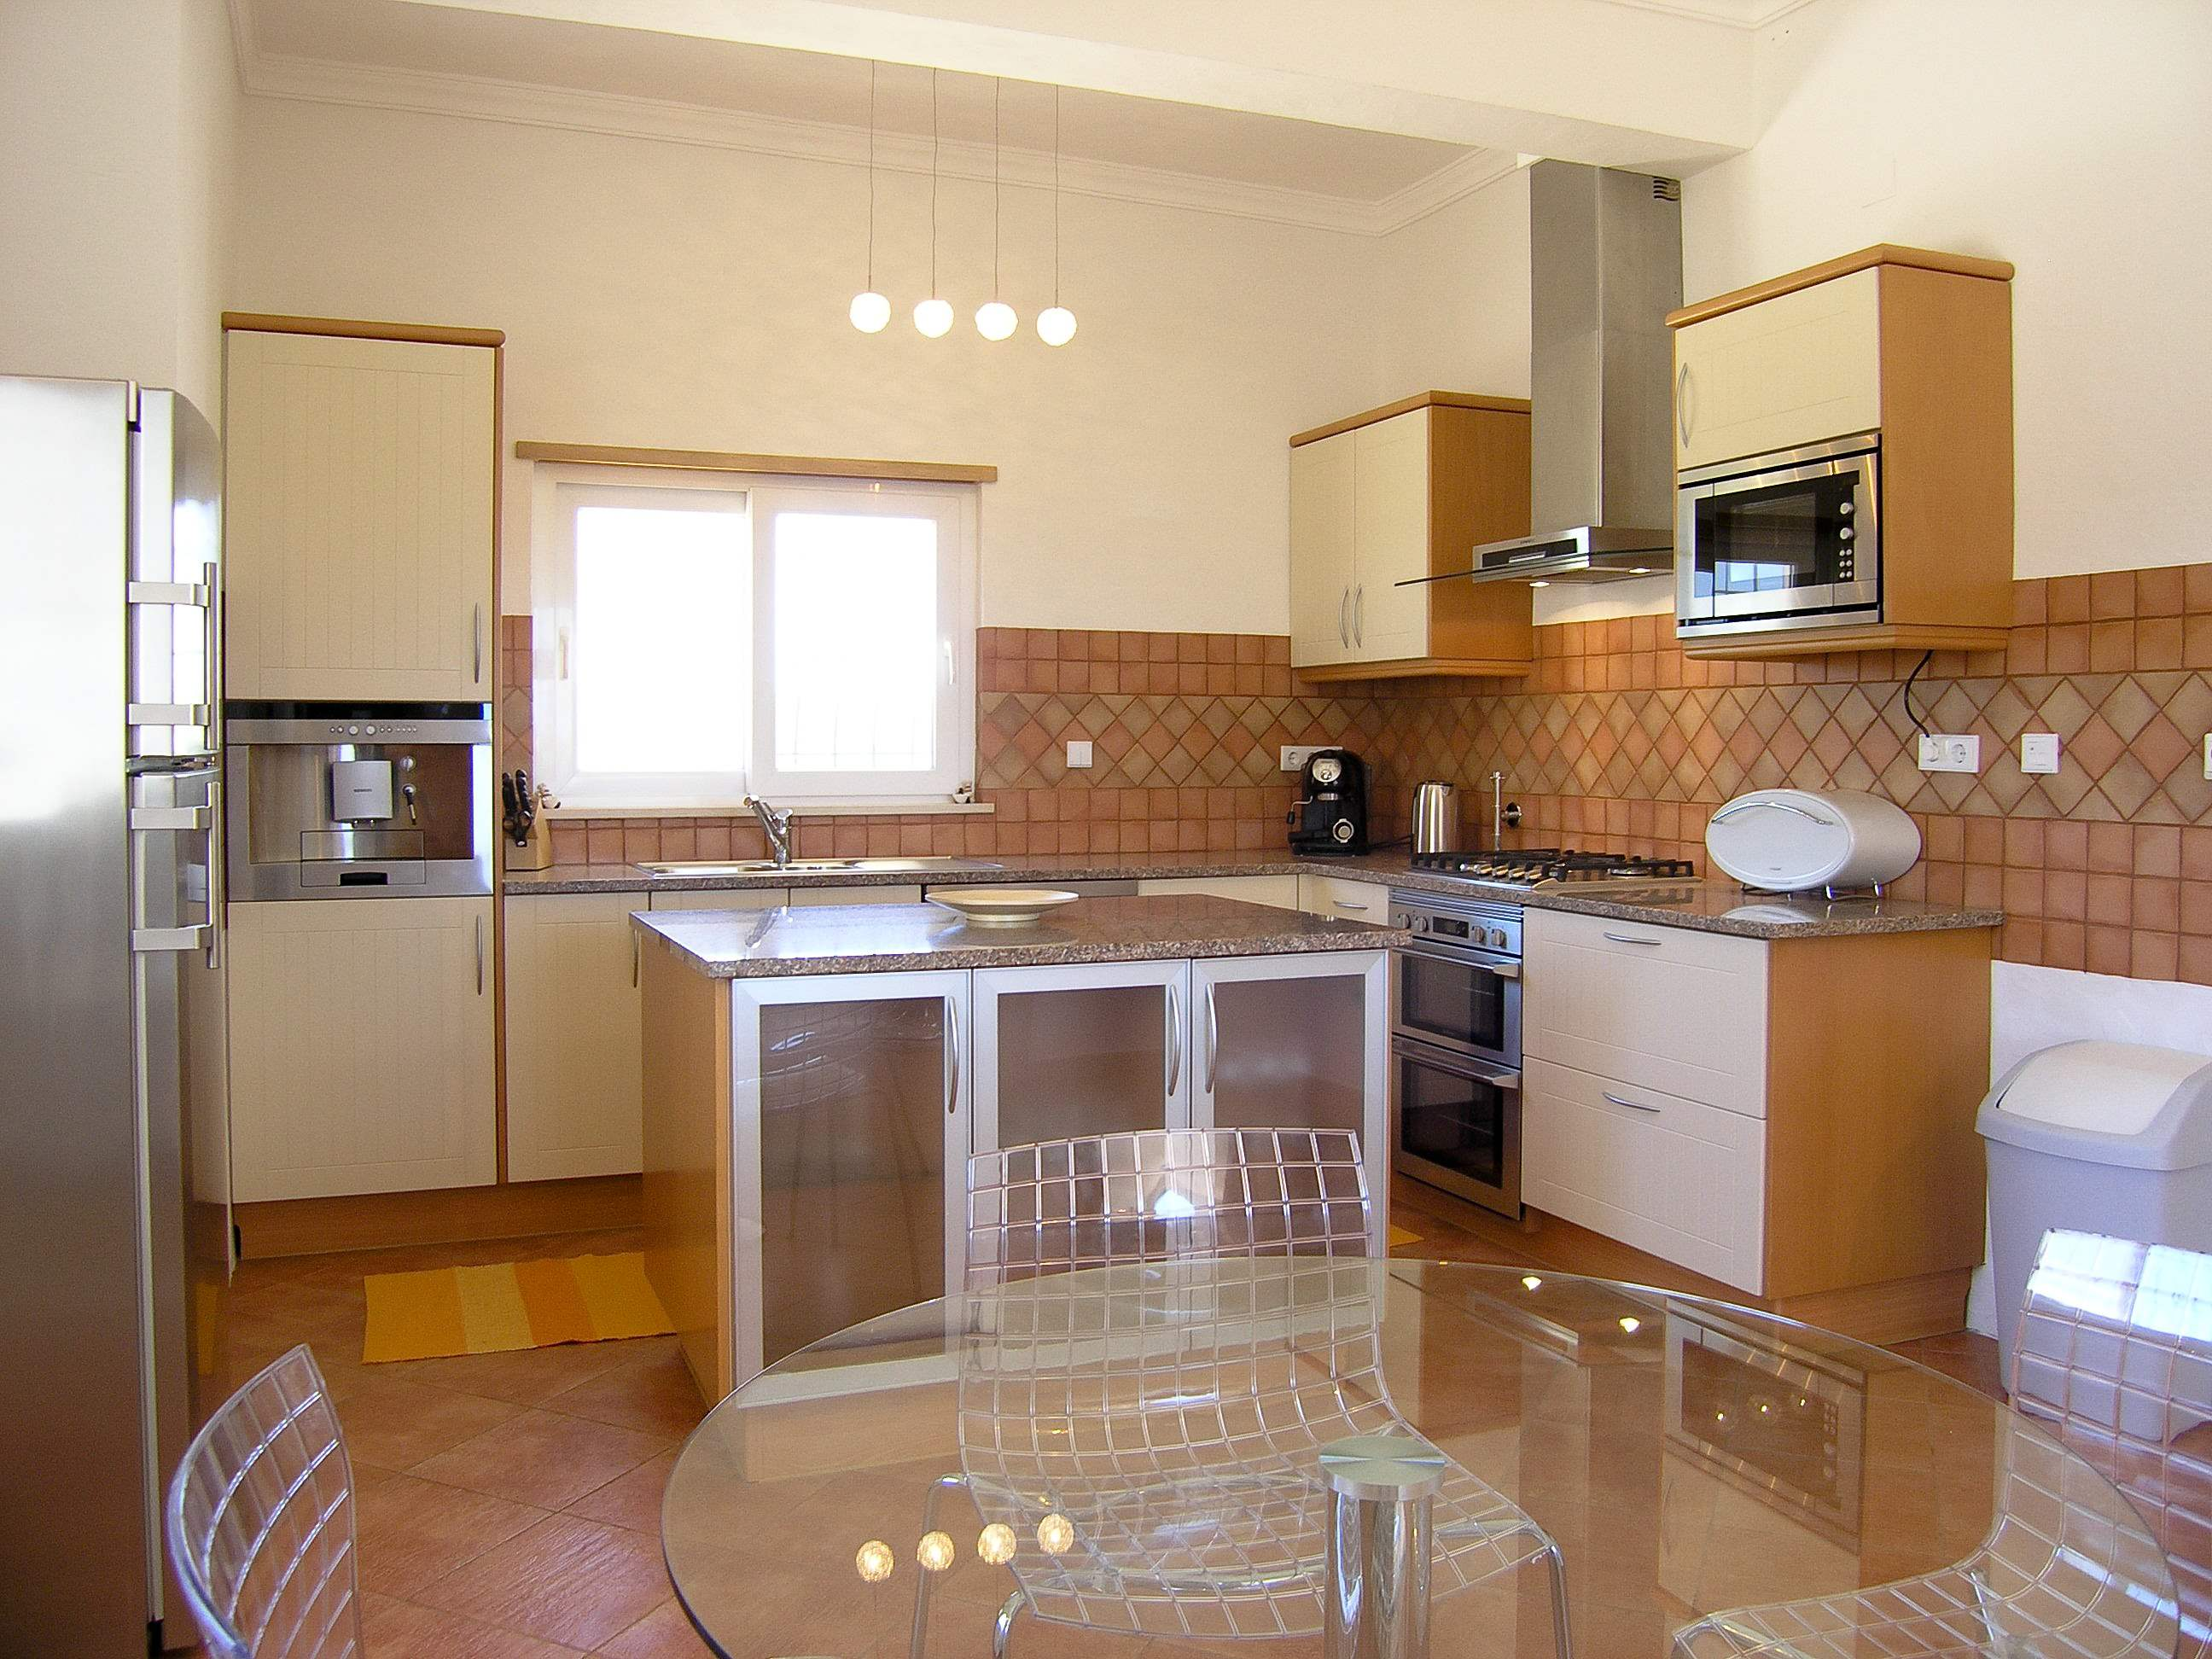 Martinhal Luxury Villa No.8, Three Bedroom Villa, 3 bedroom villa in Martinhal Sagres, Algarve Photo #10